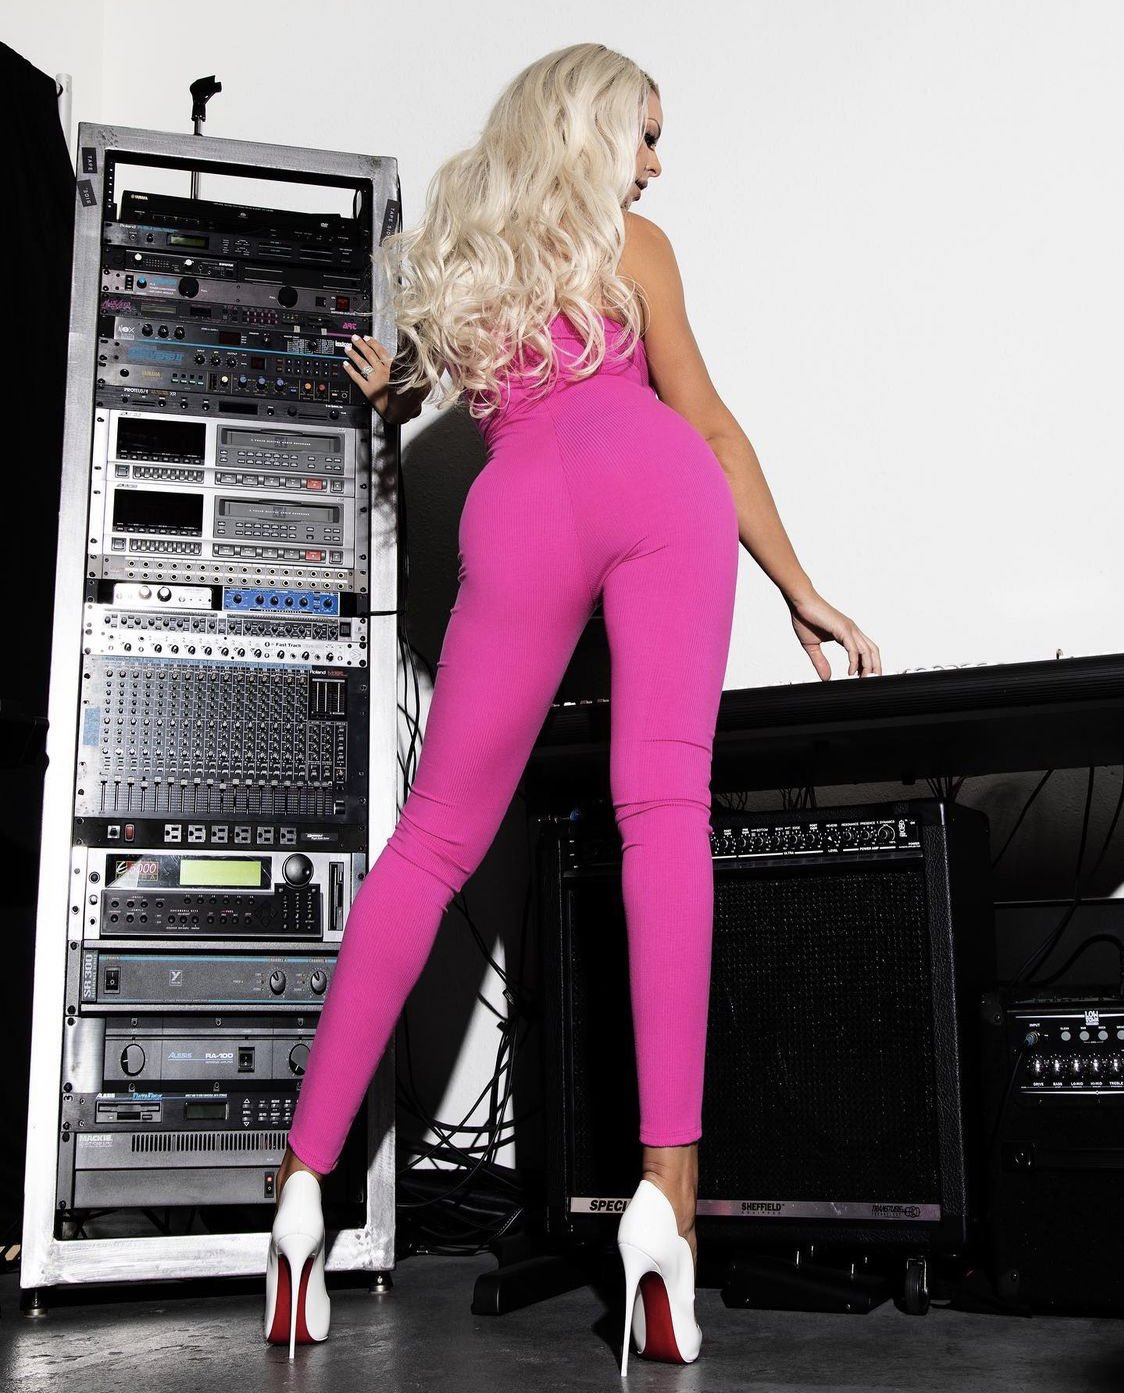 WWE Diva Maryse Posts Hot Photos In Revealing Pink Outfit 64